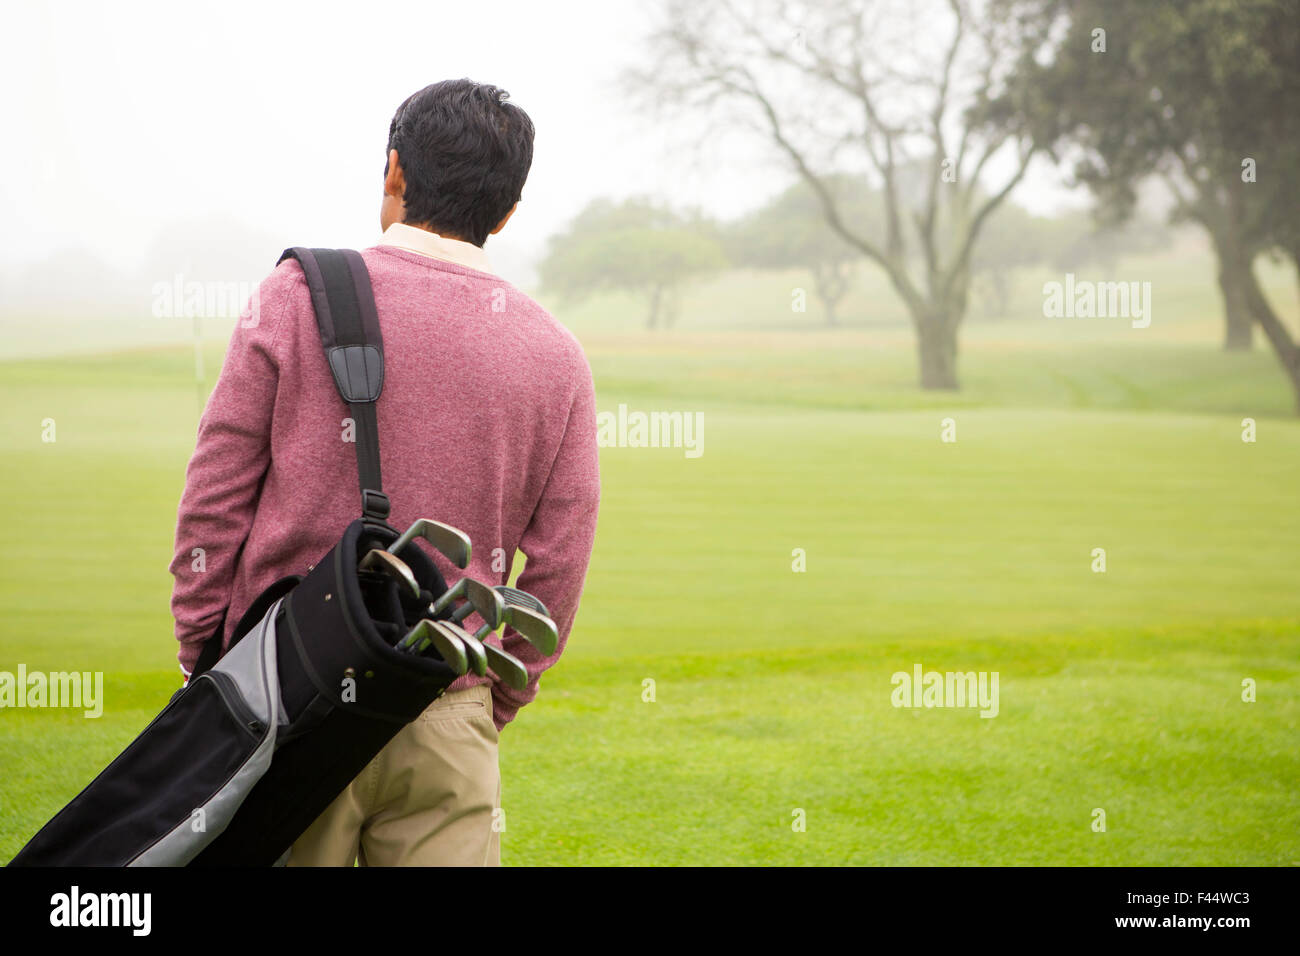 Golfer walking and holding his golf bags - Stock Image